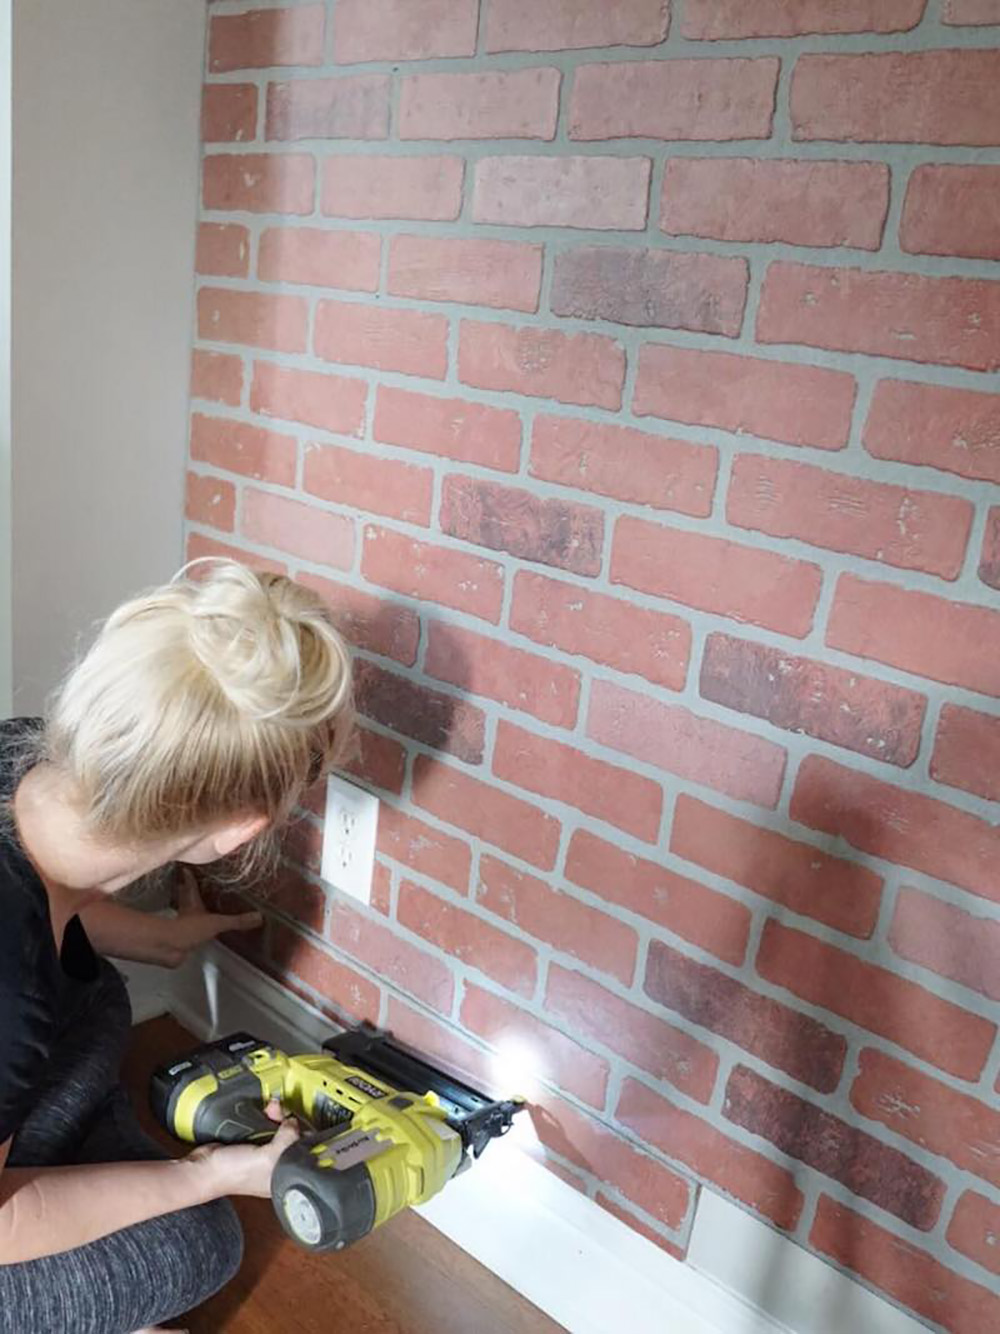 A woman attaches a brick board panel to a wall.